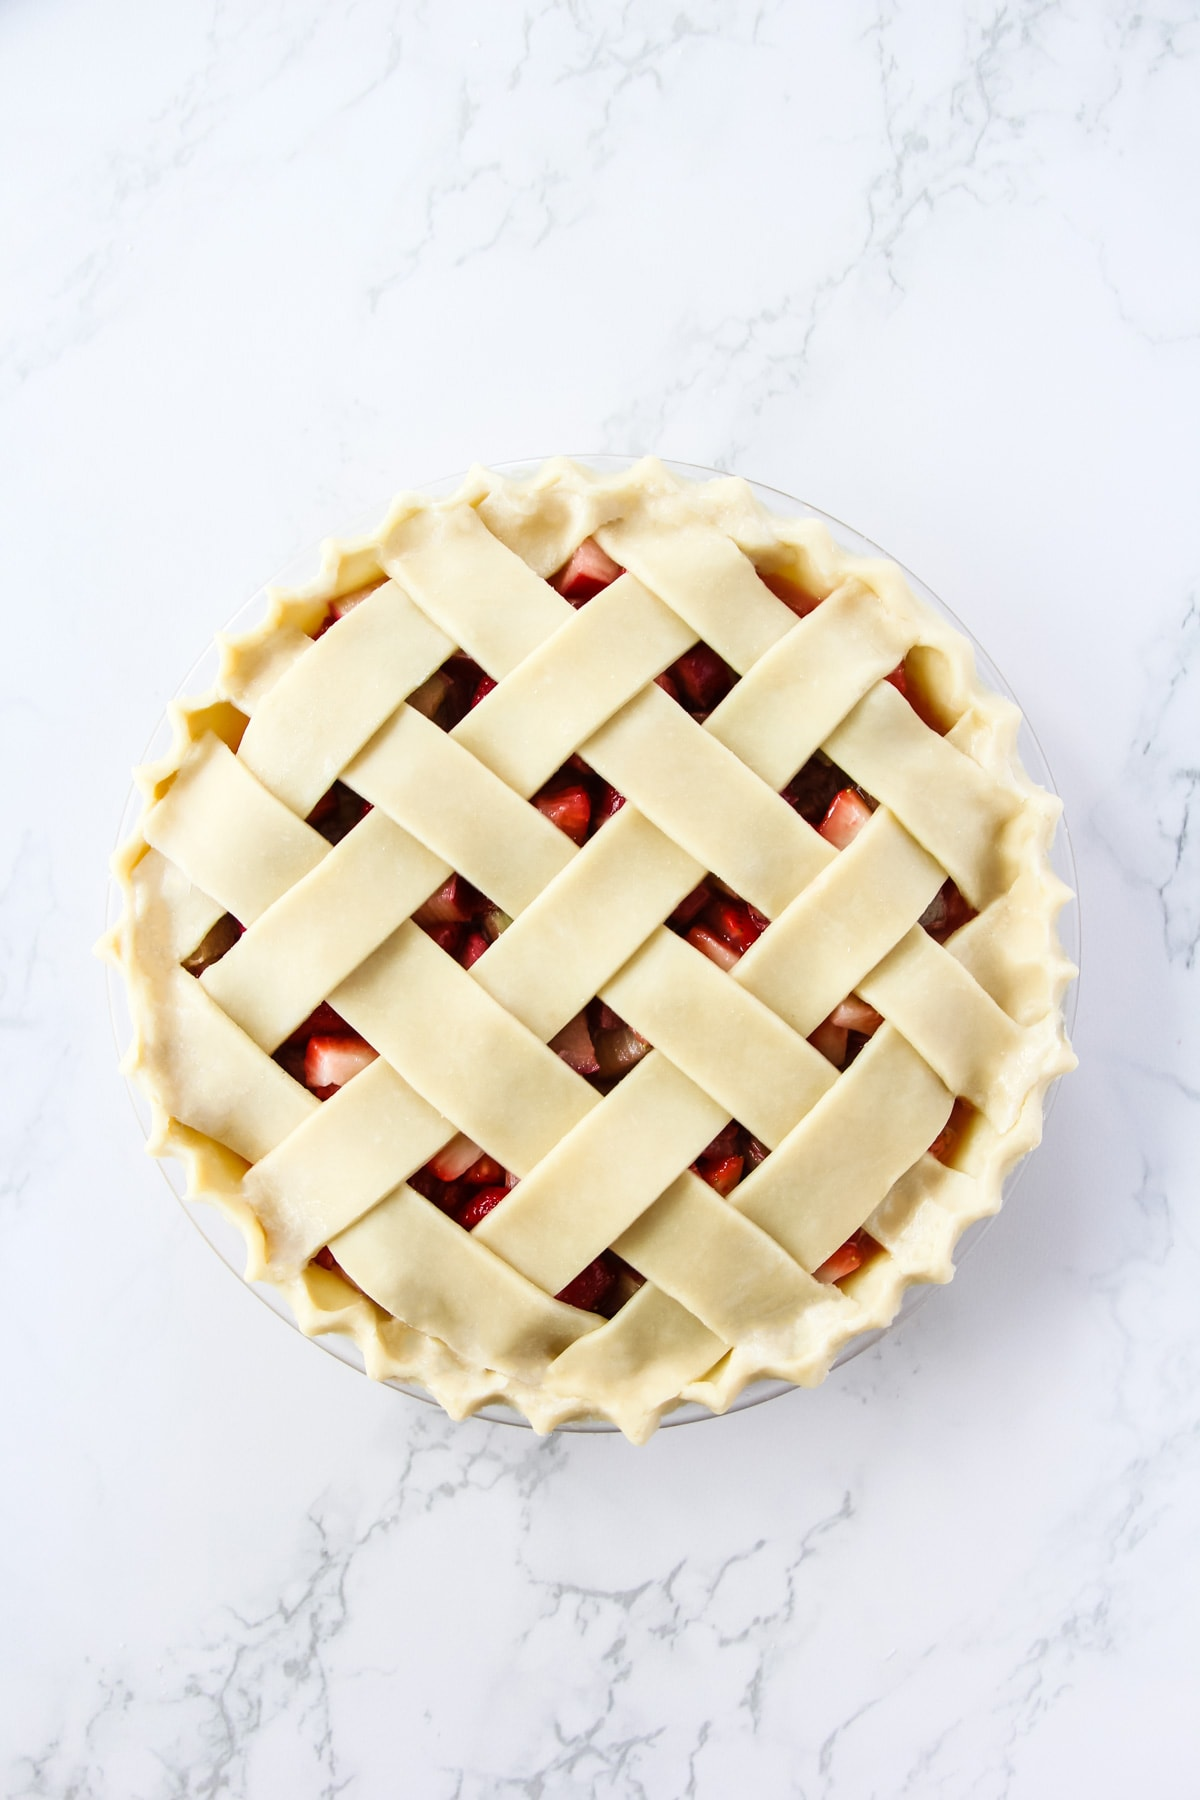 a top down view of an unbaked pie with a lattice crust. it is sitting on a marble background